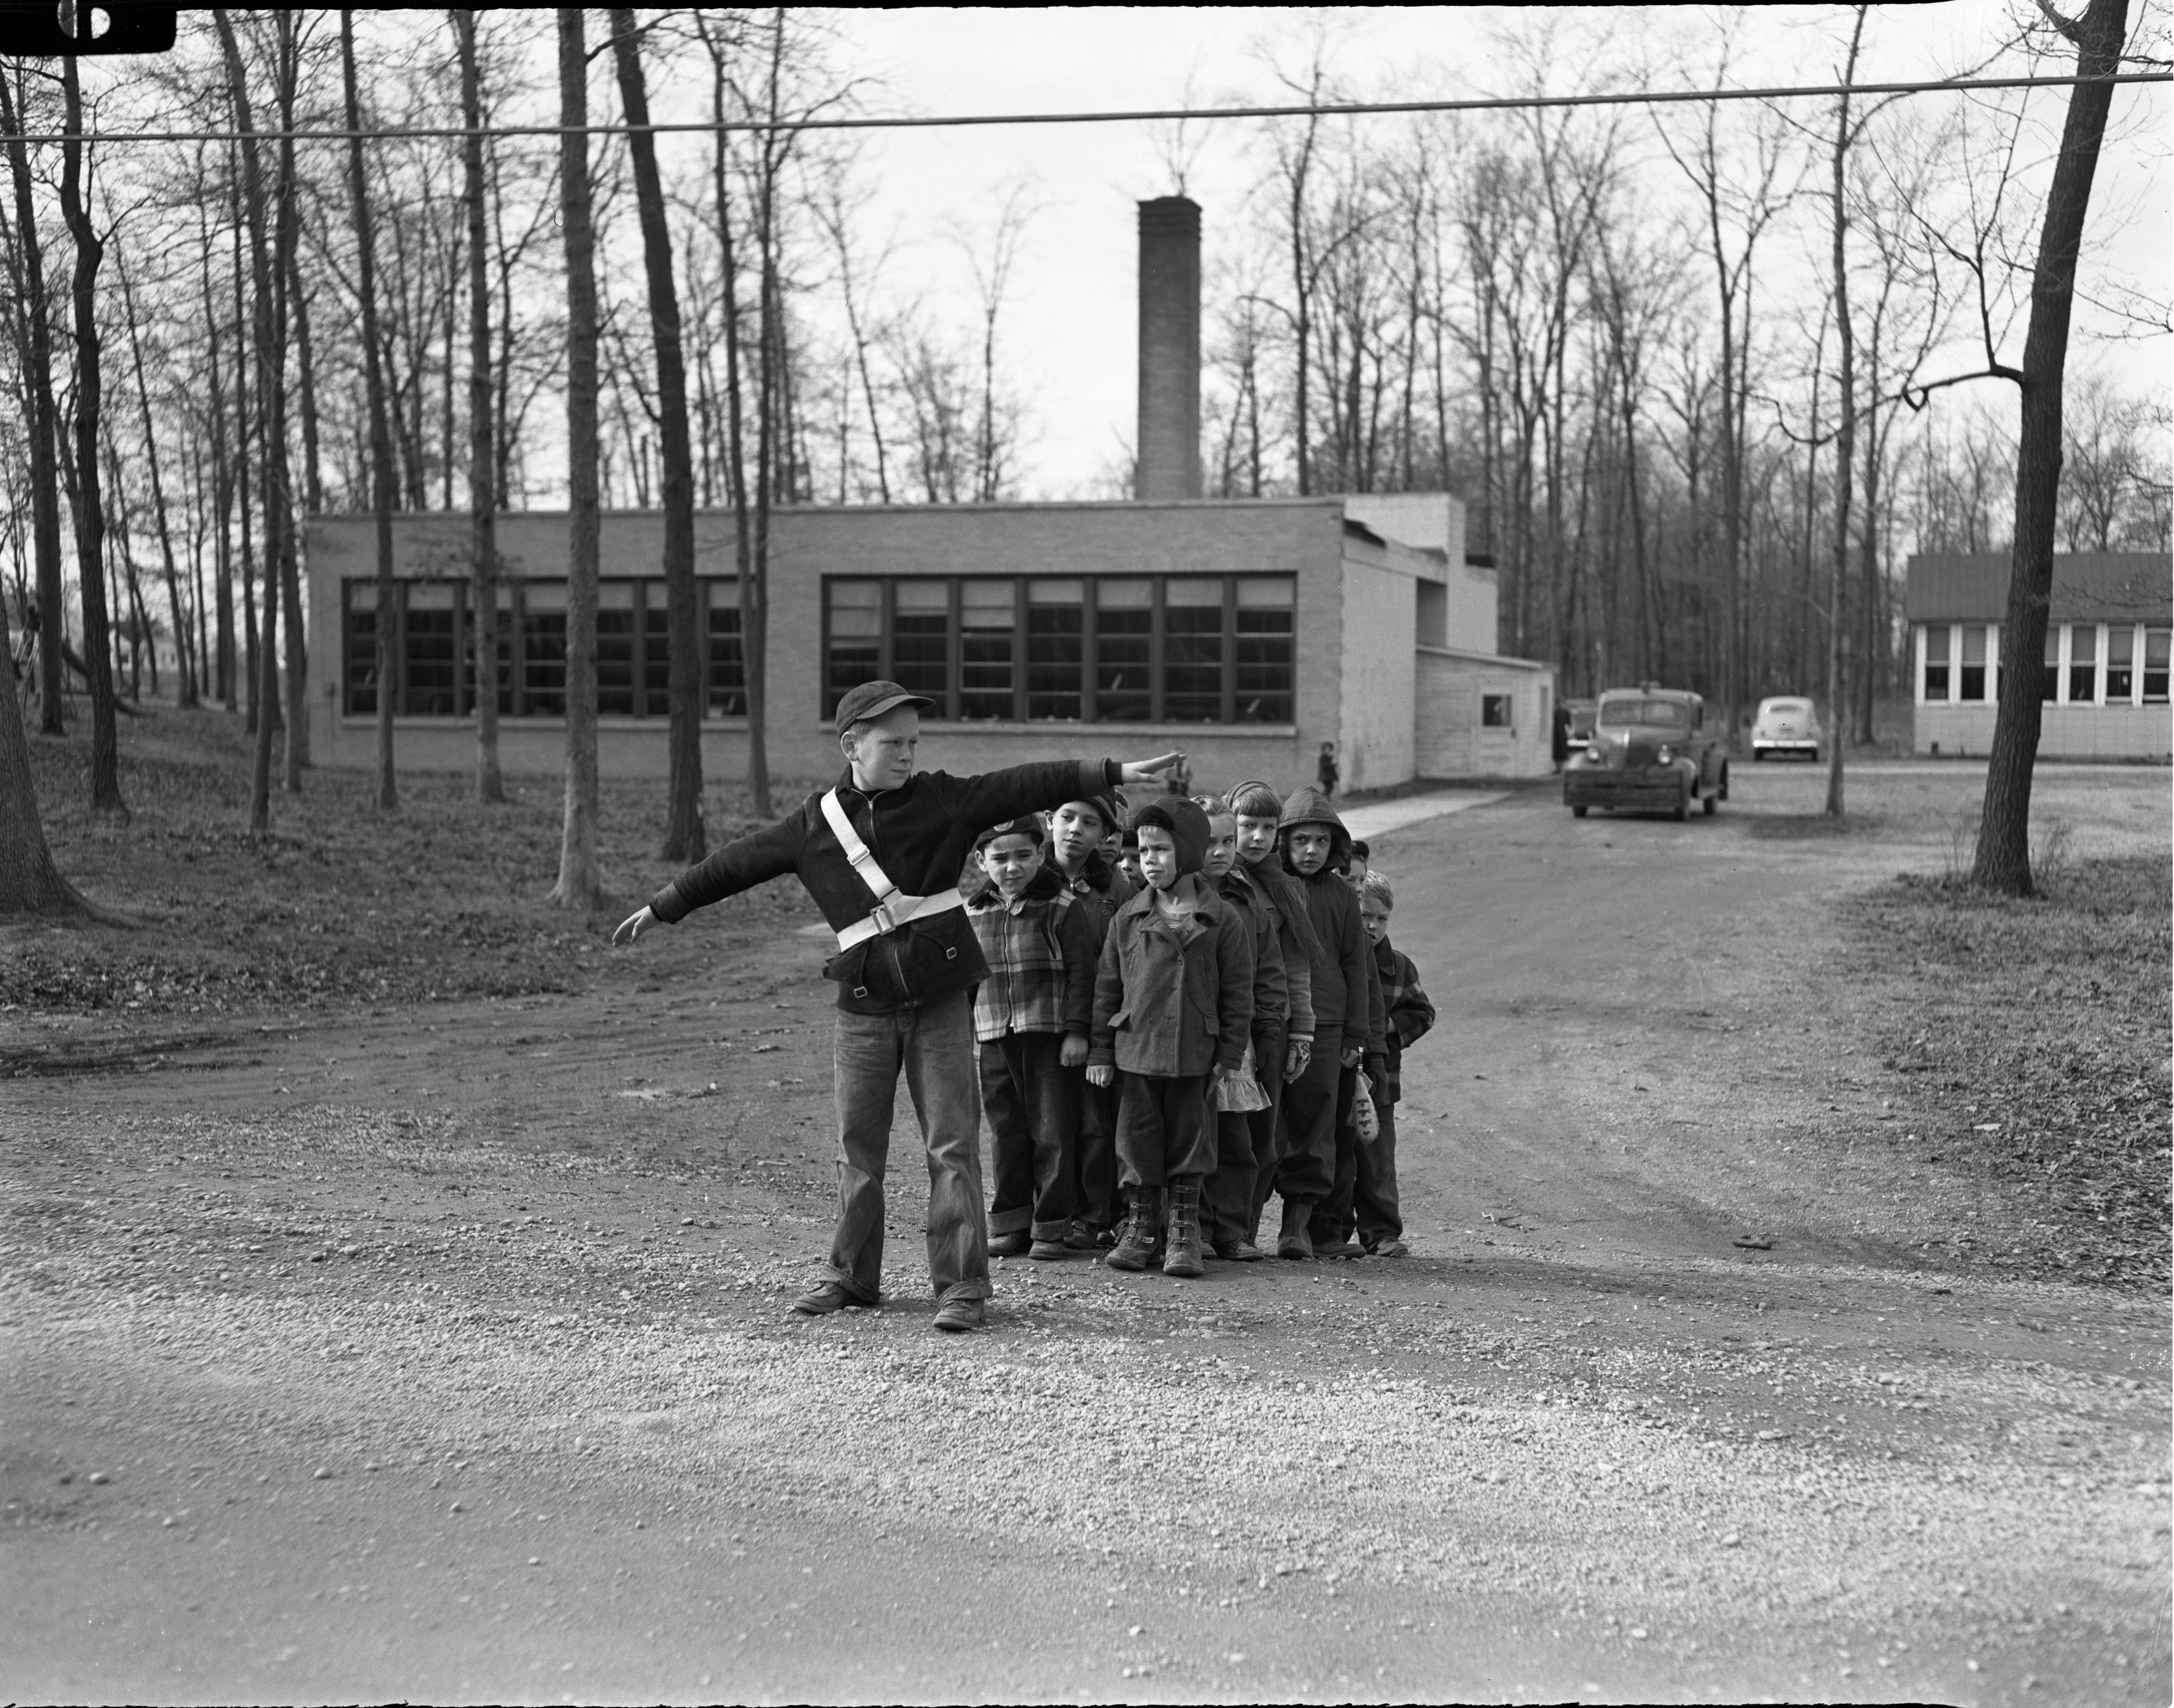 Roger Holcomb Performs Safety Patrol Duties At Fritz School, December 1951 image